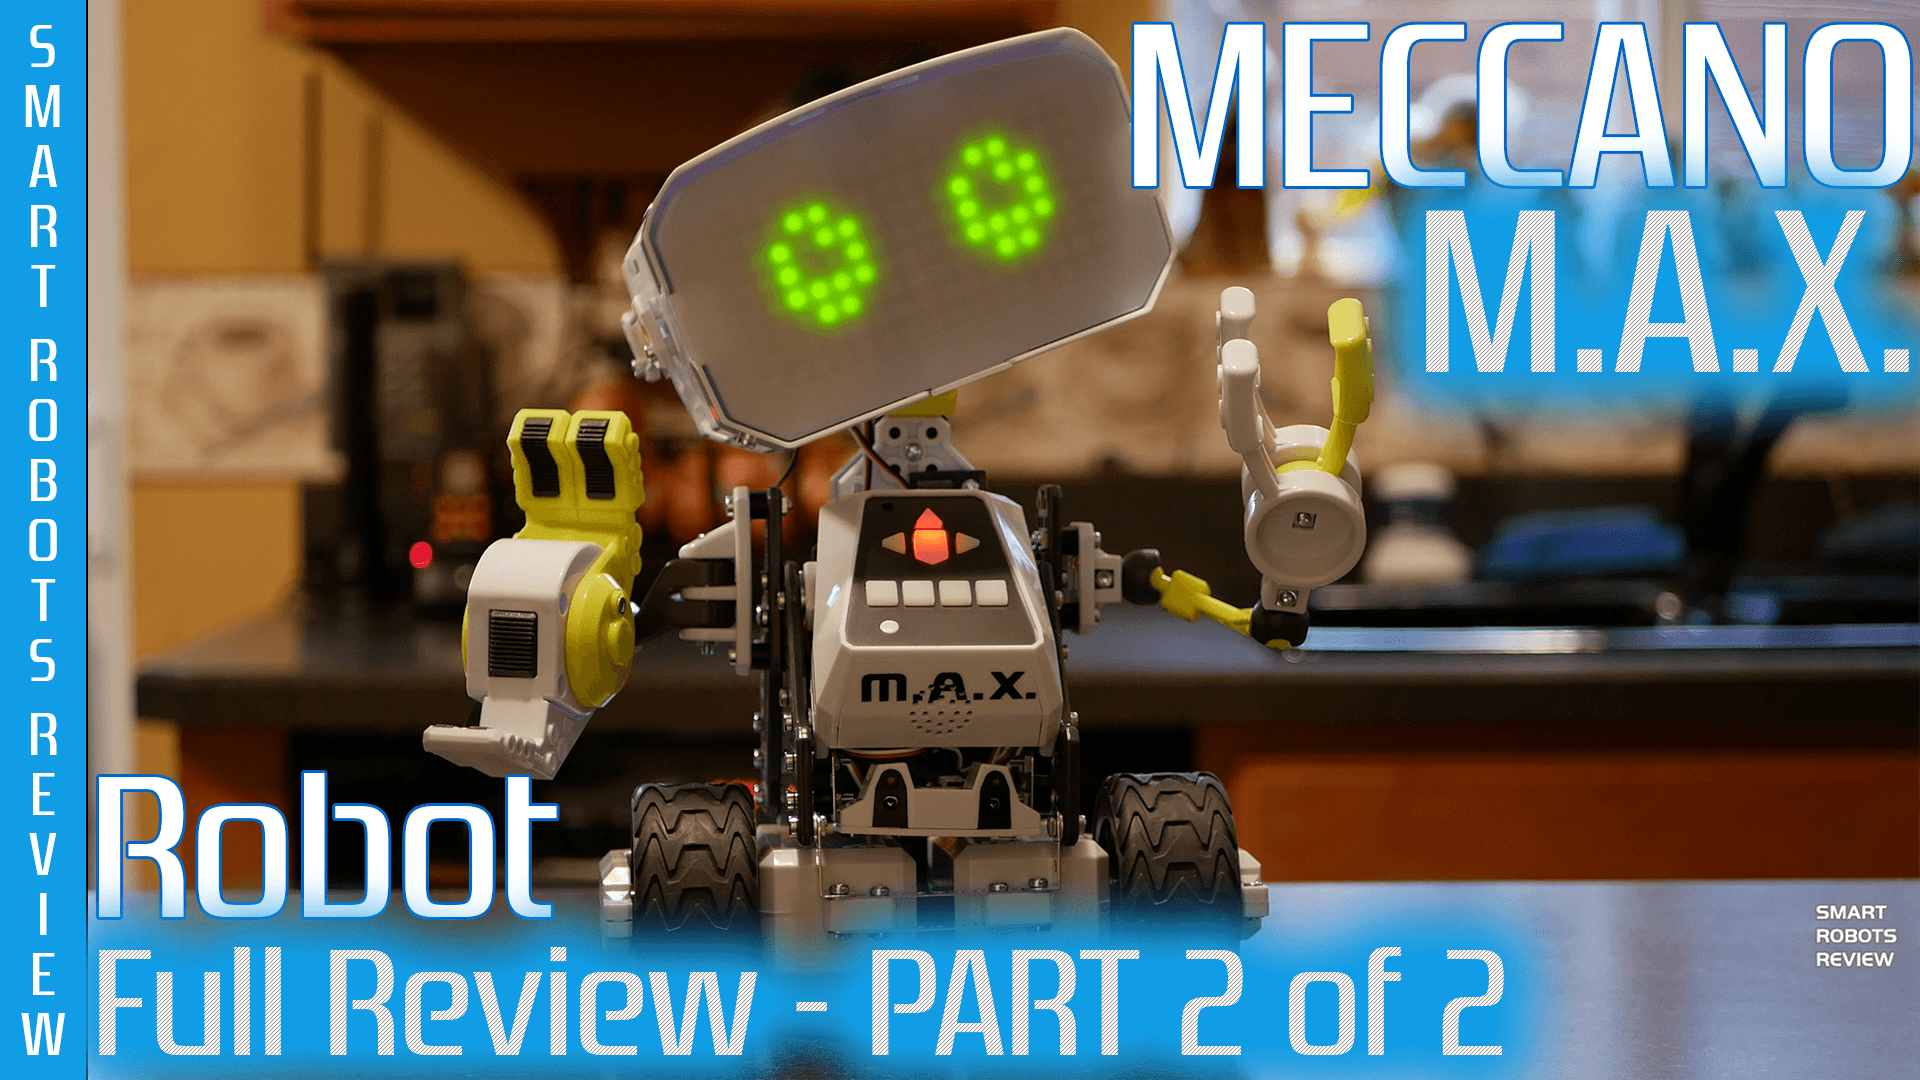 Spinmaster Smart Robots Review Relays Electronics In Meccano Max Full Part 2 Of Stem